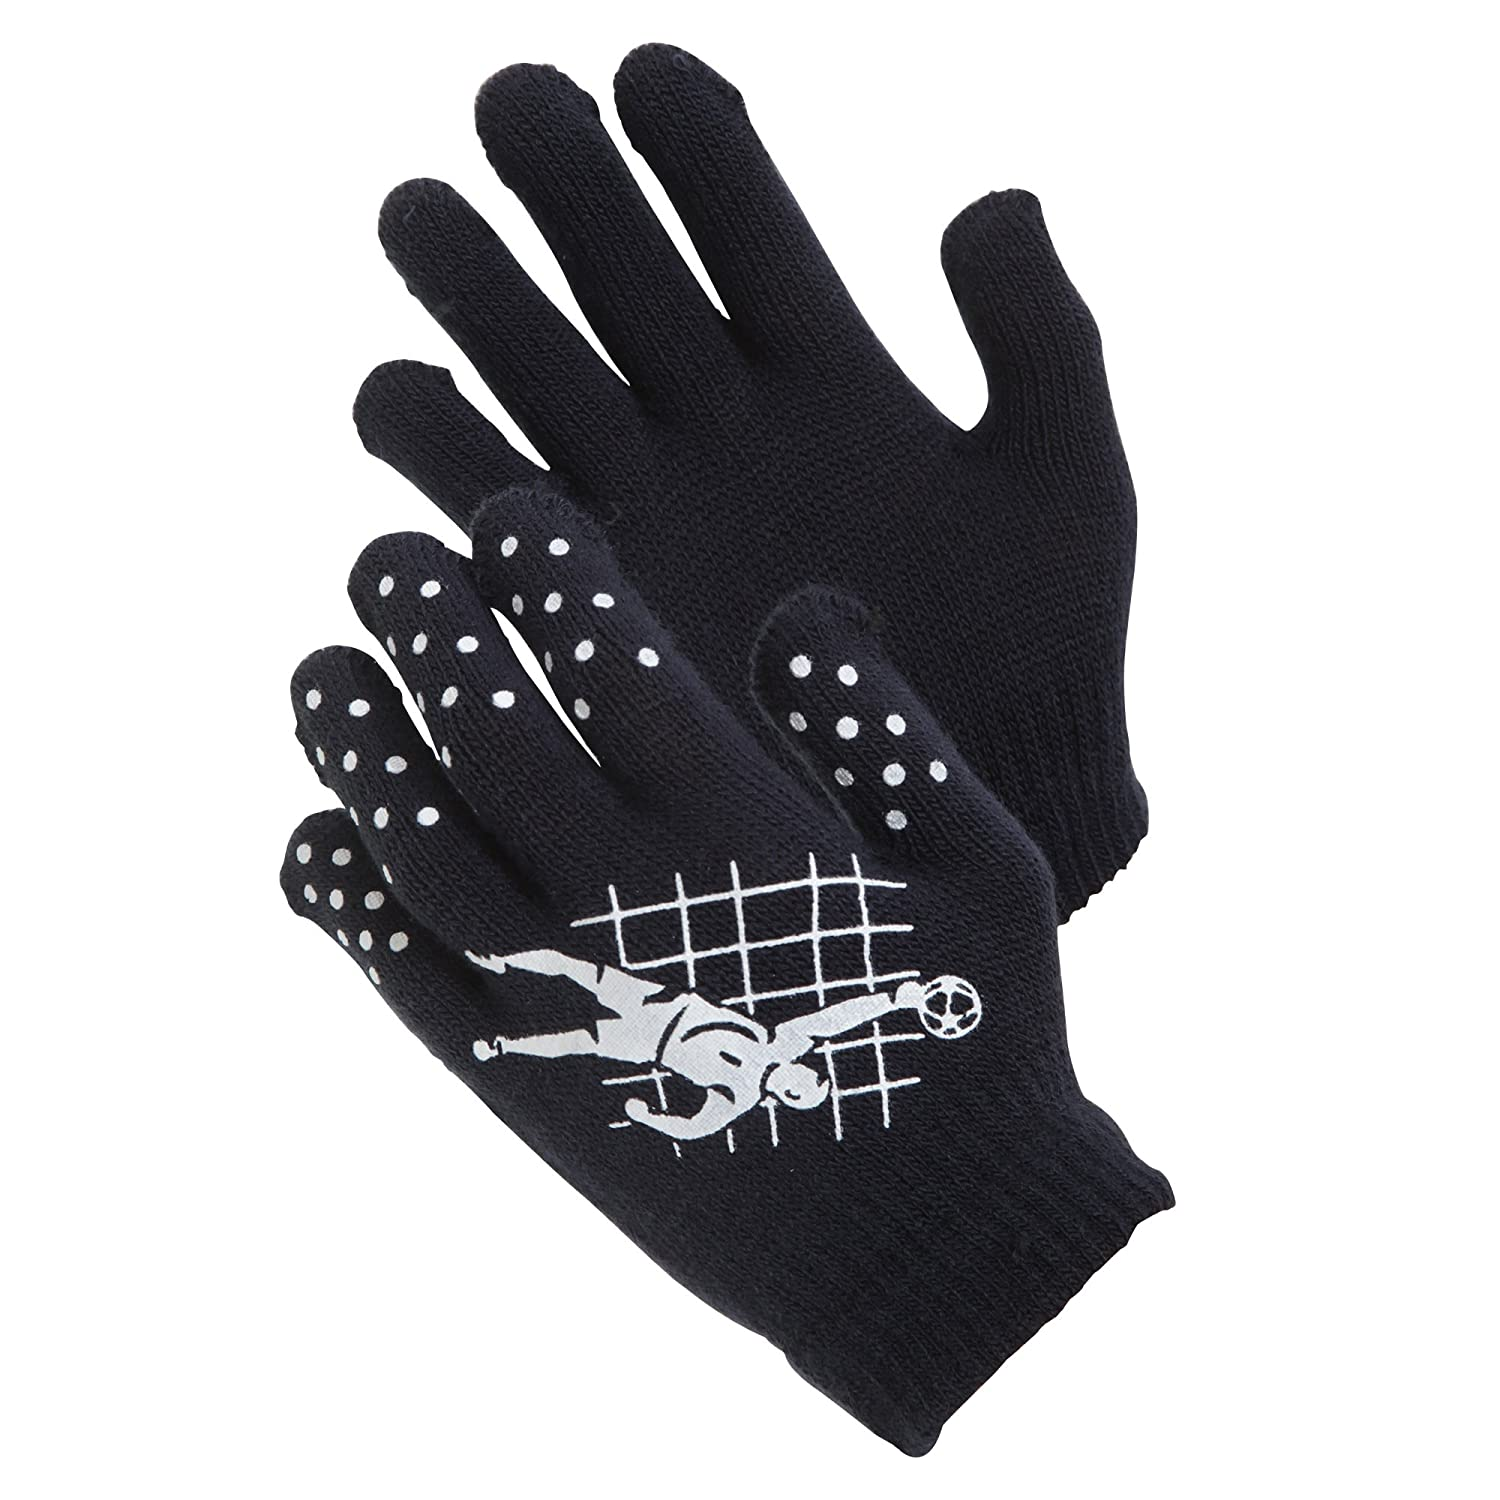 Childrens Boys Football Design Thermal Magic Gripper Gloves (One Size) (Black/Red) Universal Textiles UTGL476_5